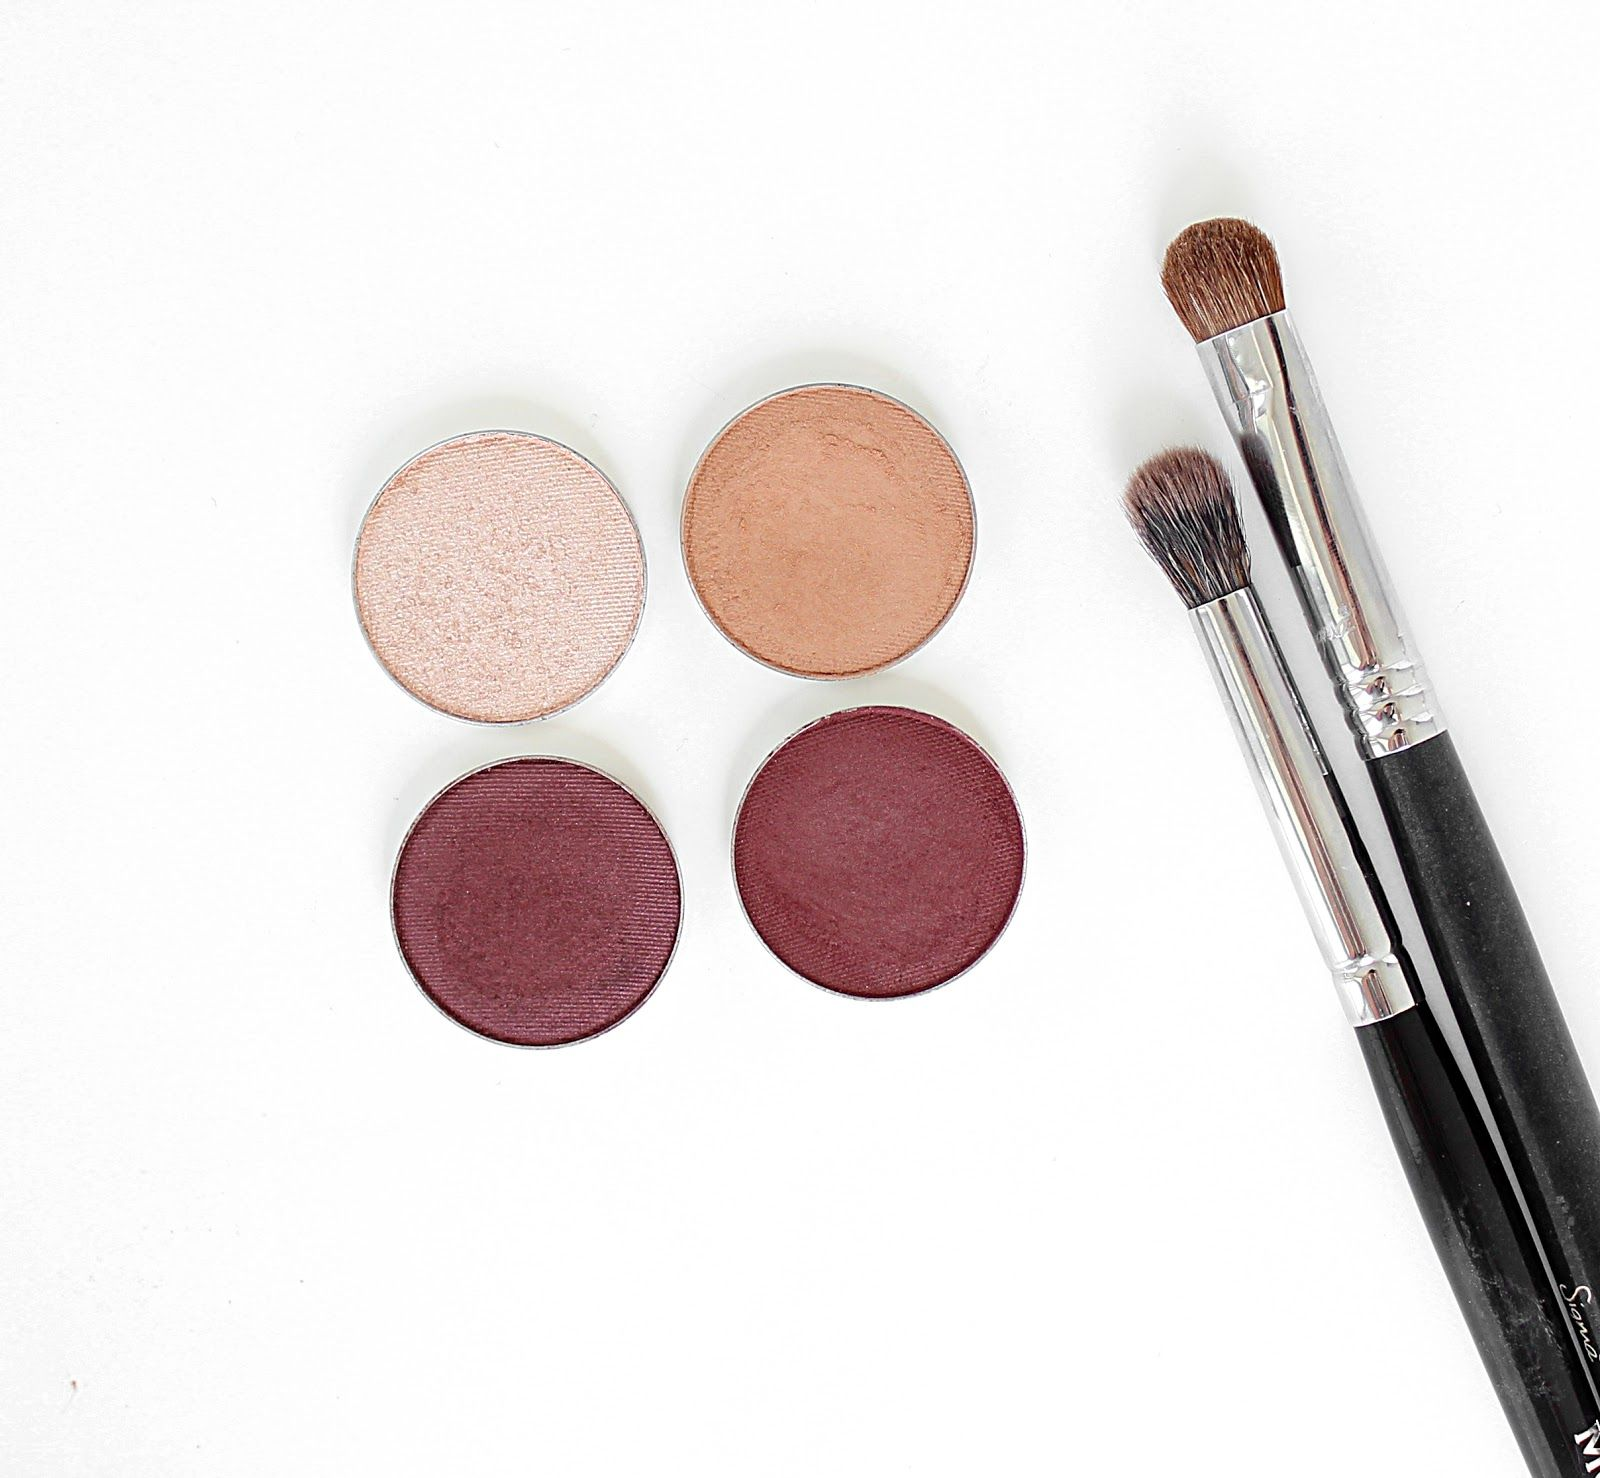 Makeup Geek Eye Shadow Quad Warm Eyeshadow, Makeup